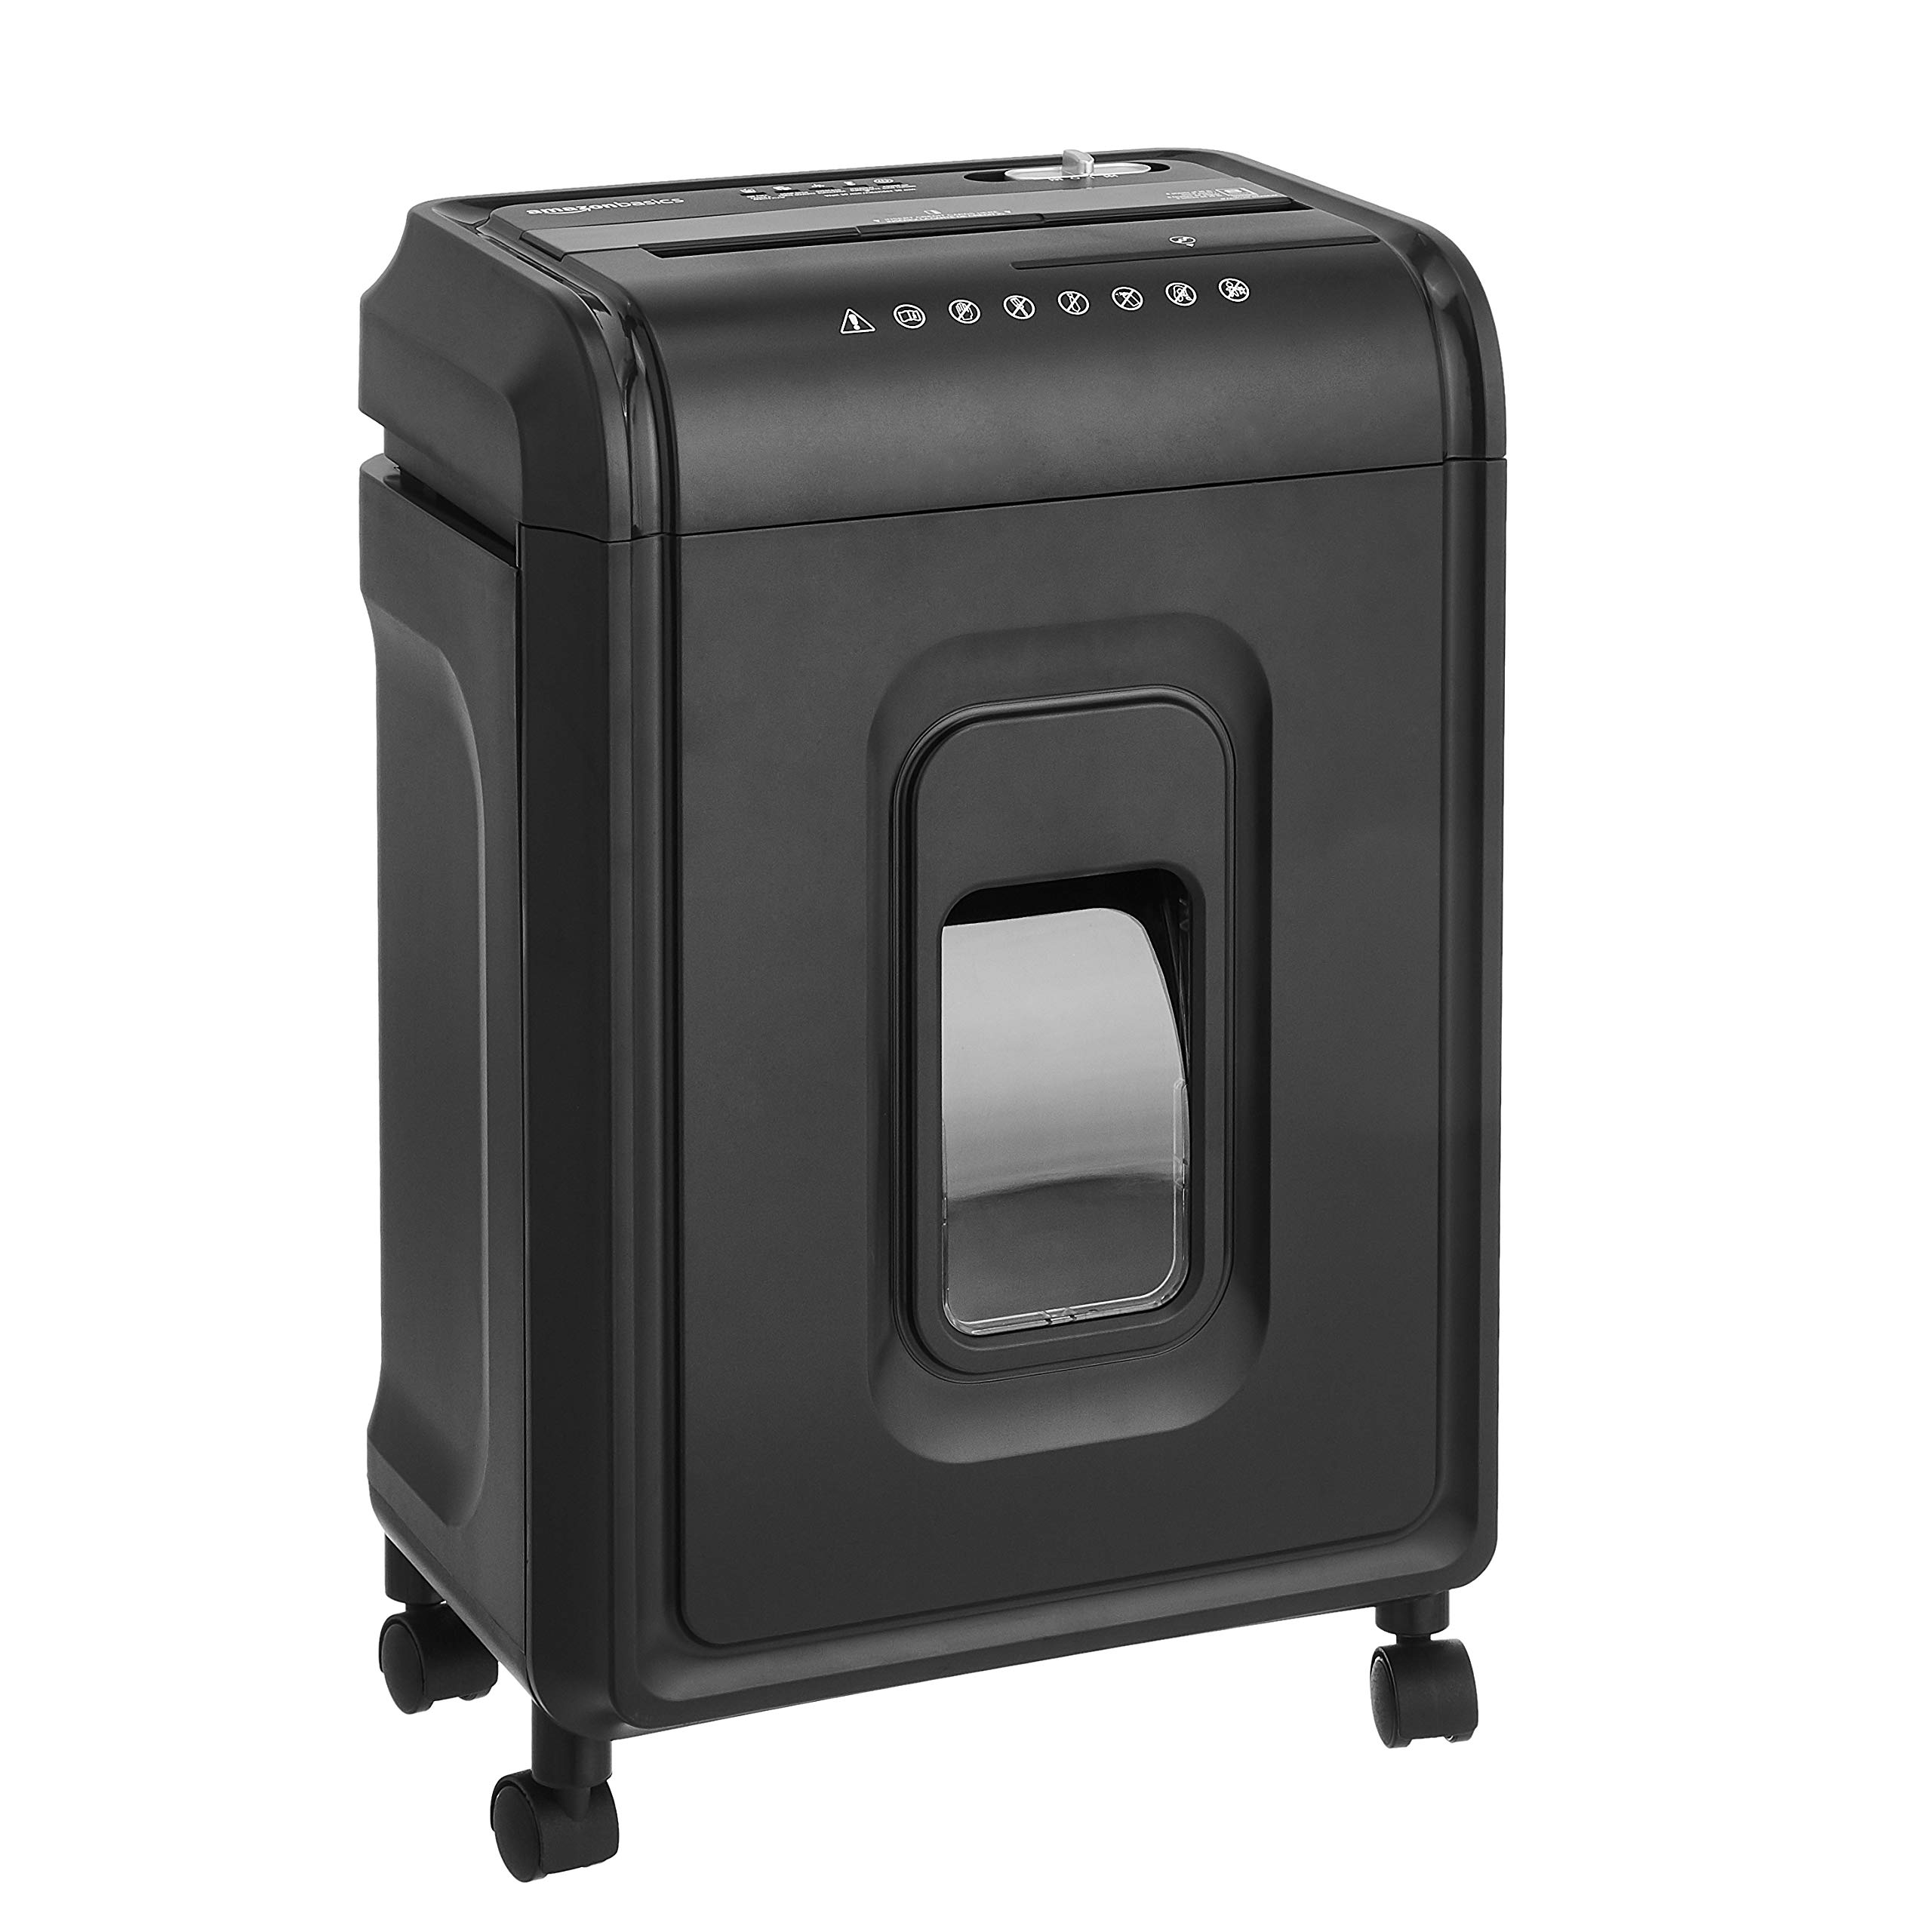 AmazonBasics 8-Sheet High-Security Micro-Cut Paper, CD, and Credit Card Shredder with Pullout Basket by AmazonBasics